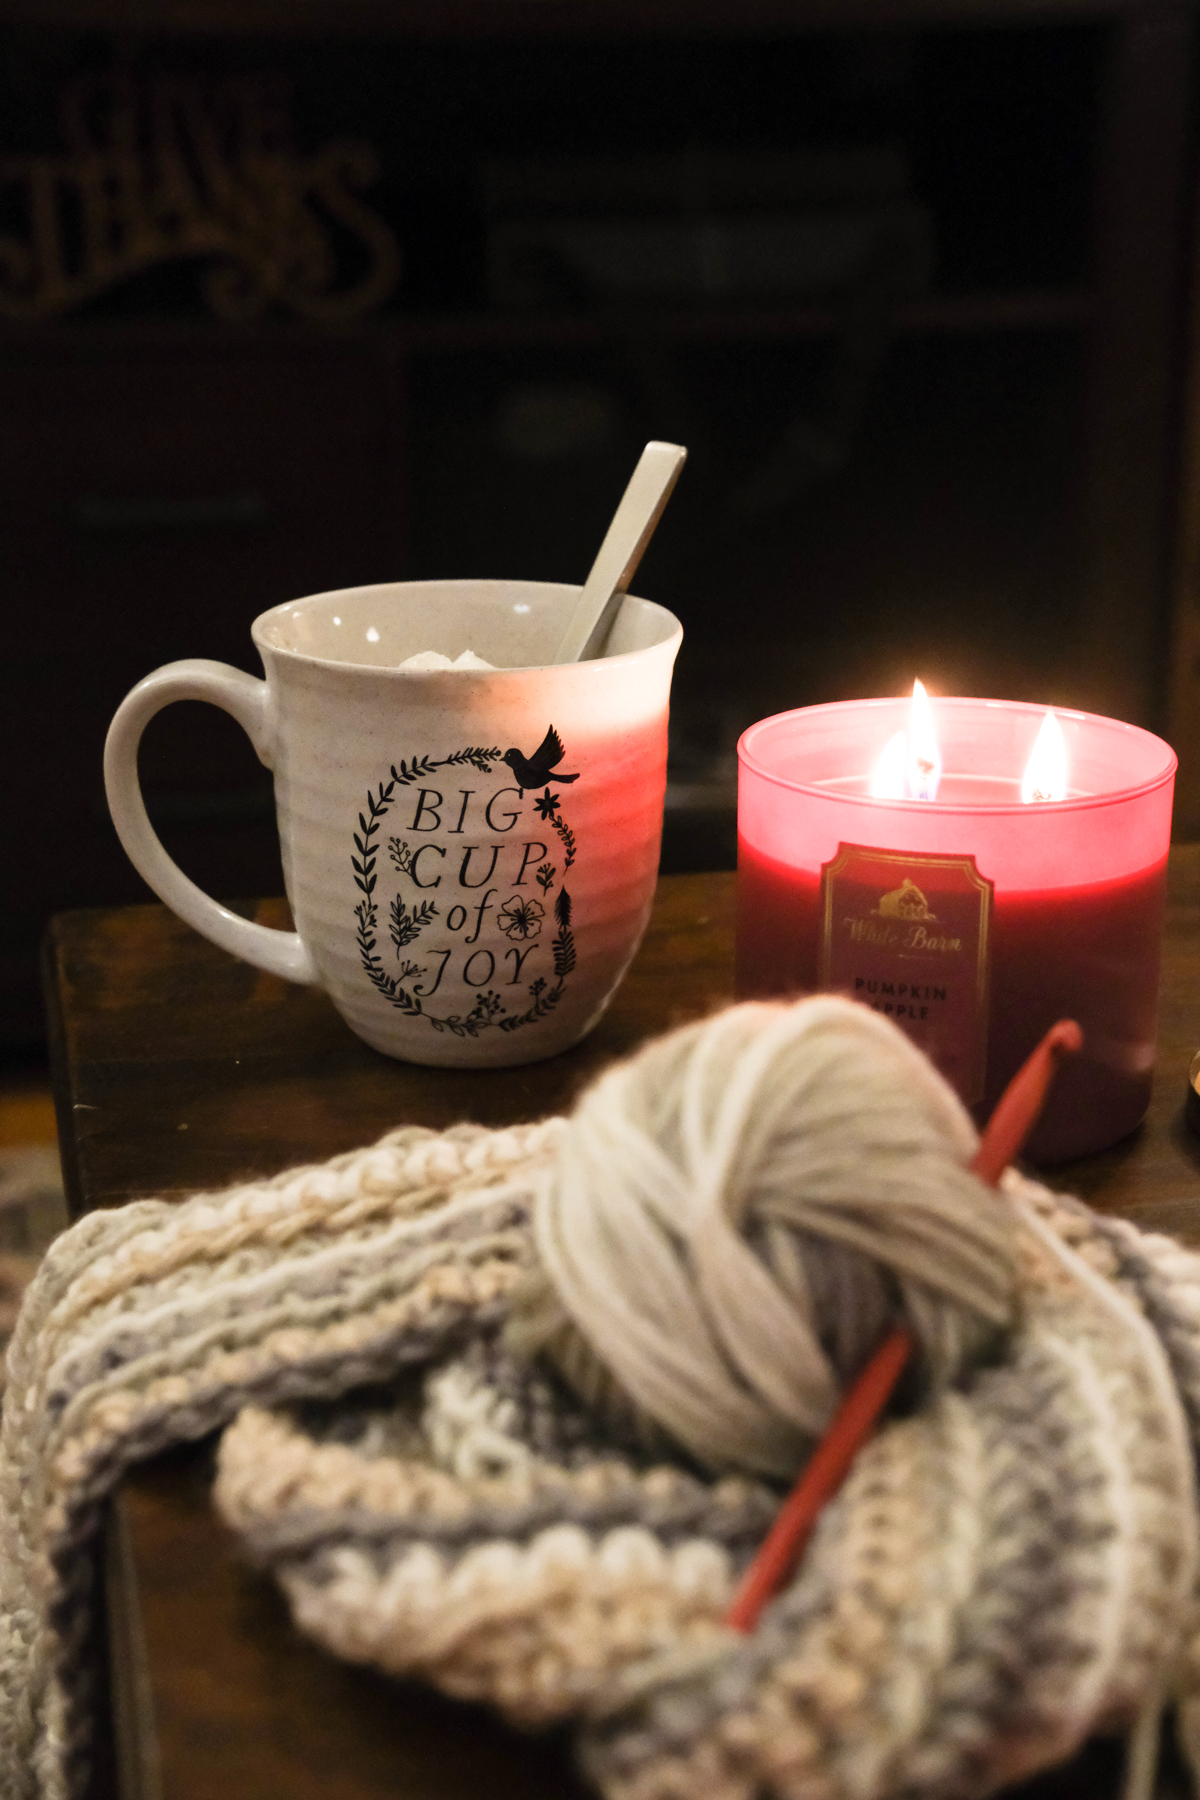 mug candle and crochet project on a coffee table